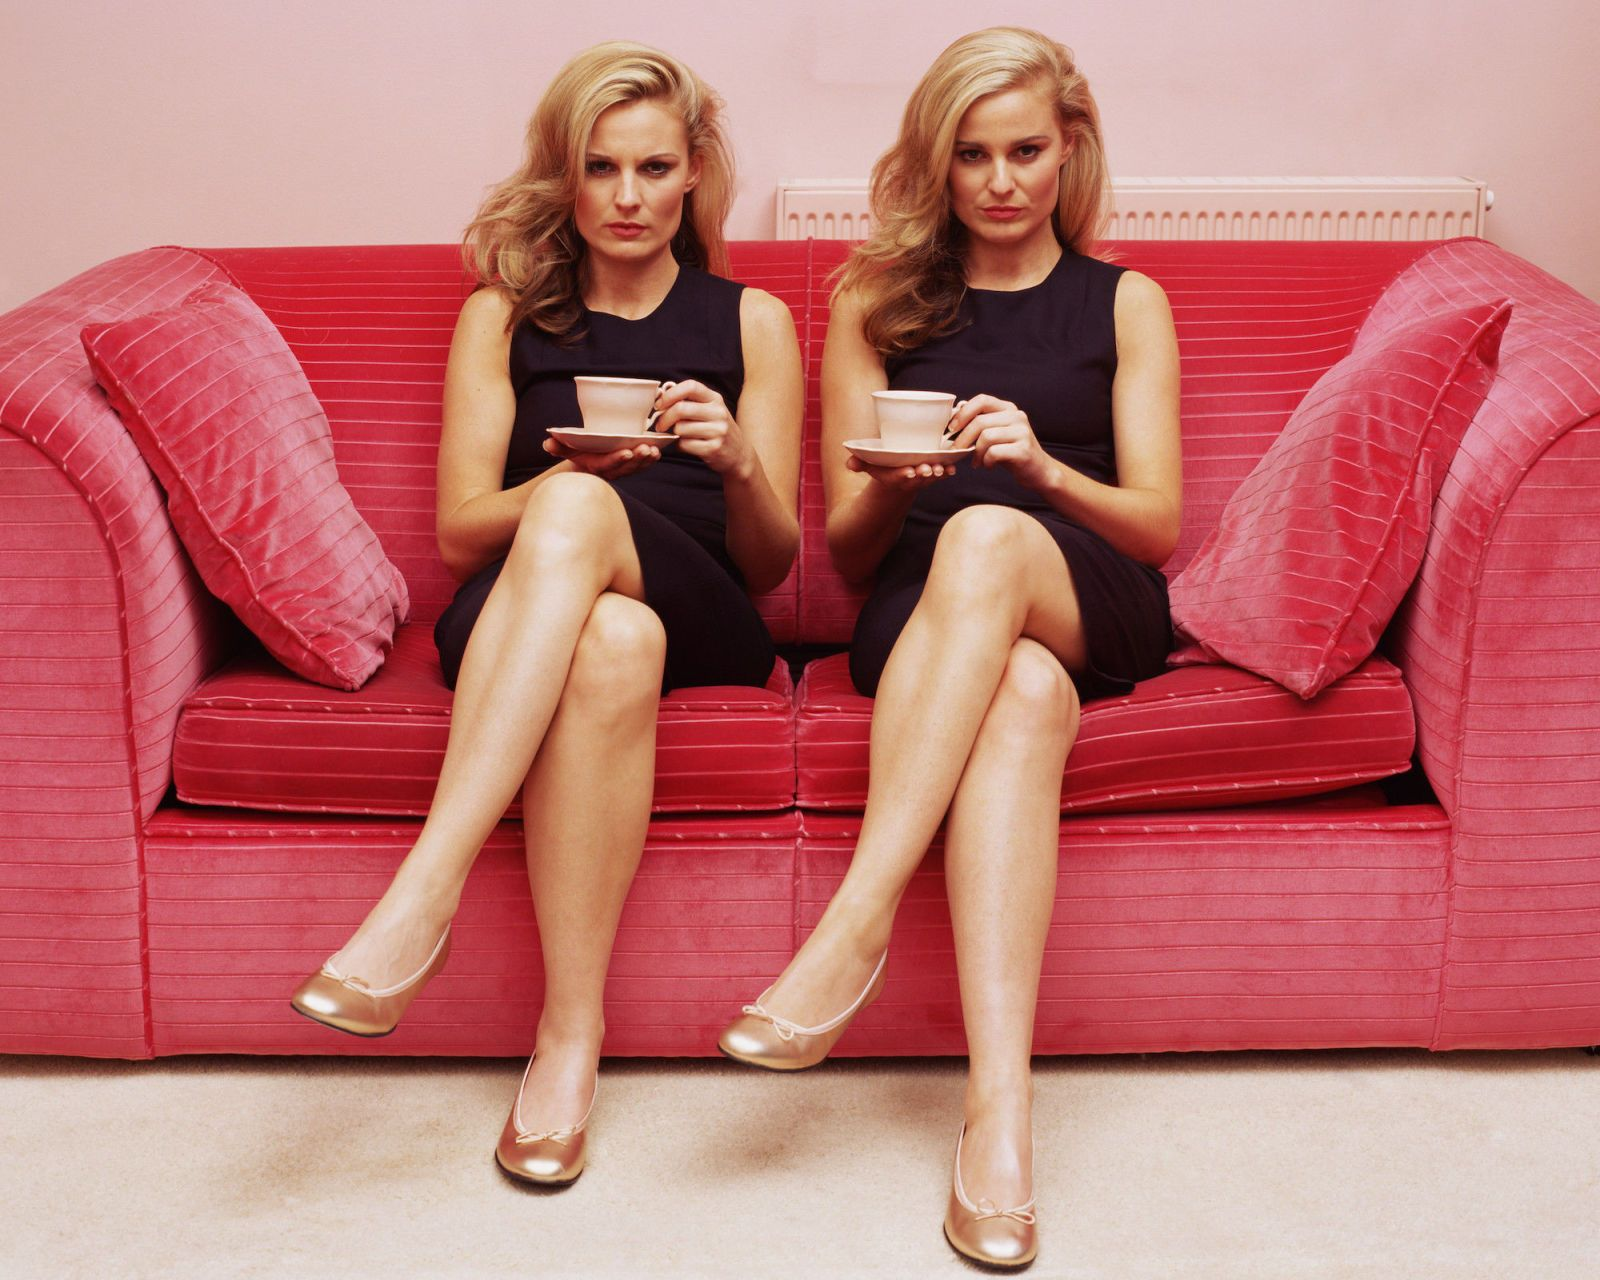 Do identical twins have same sexual orientation